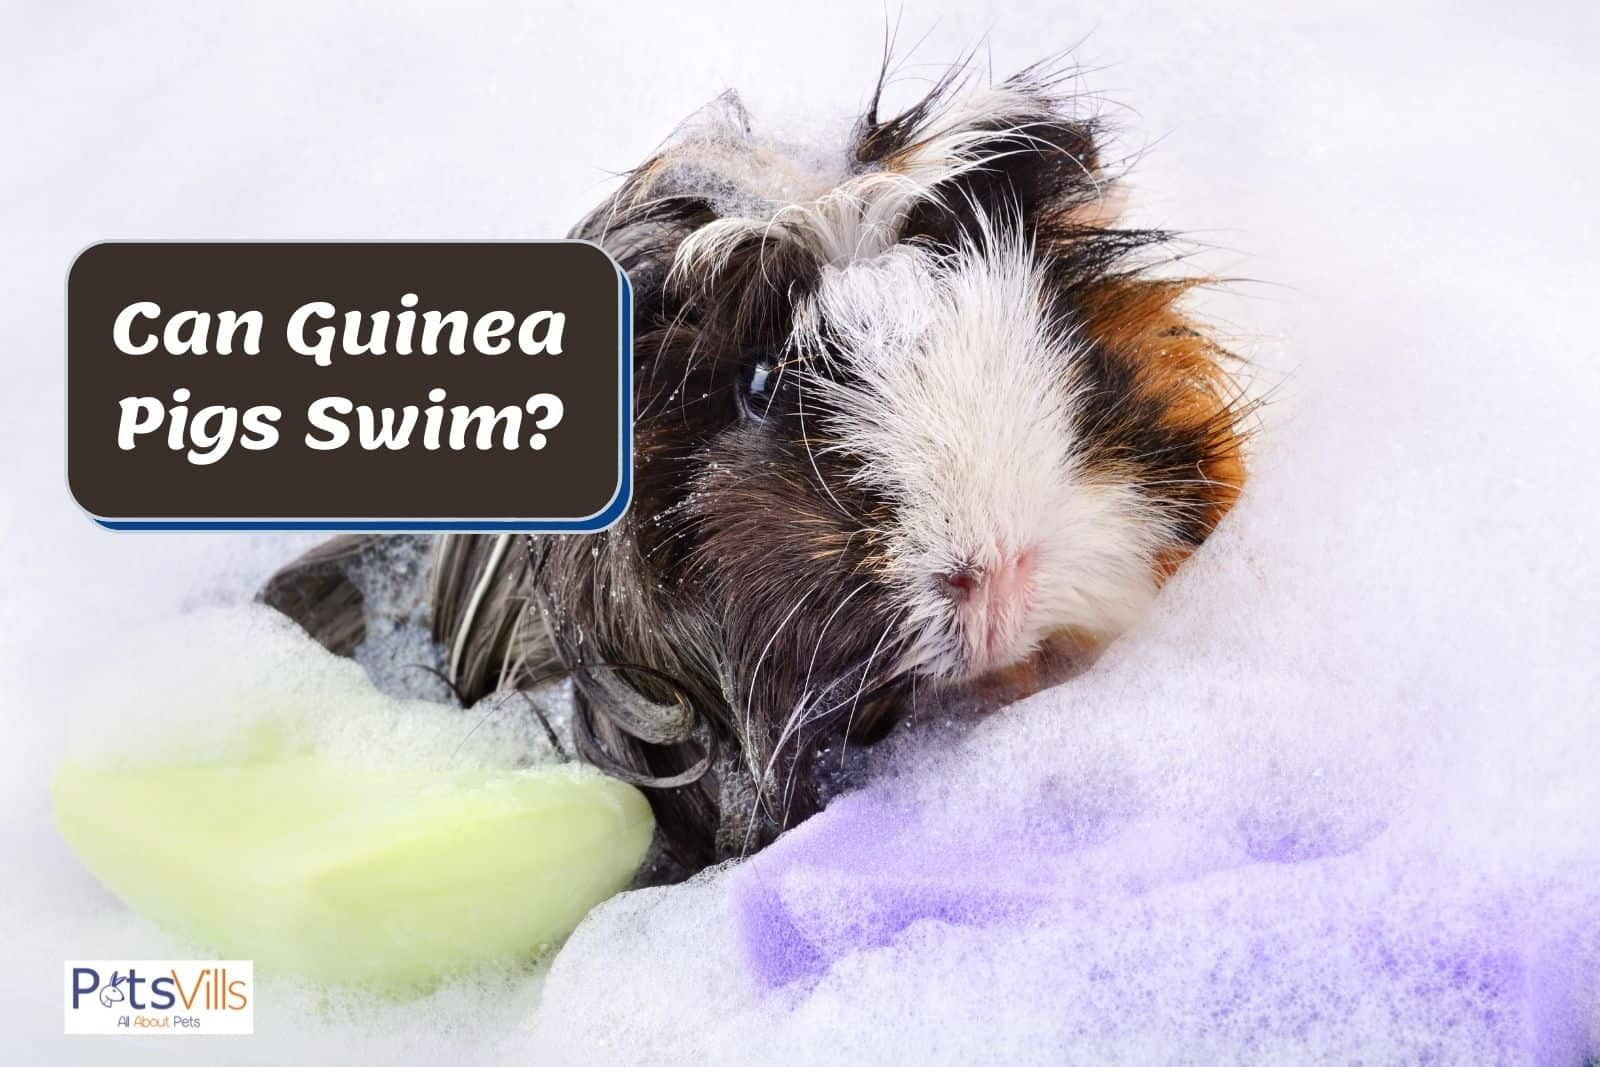 guinea pig surrounded by bubbles and a soap